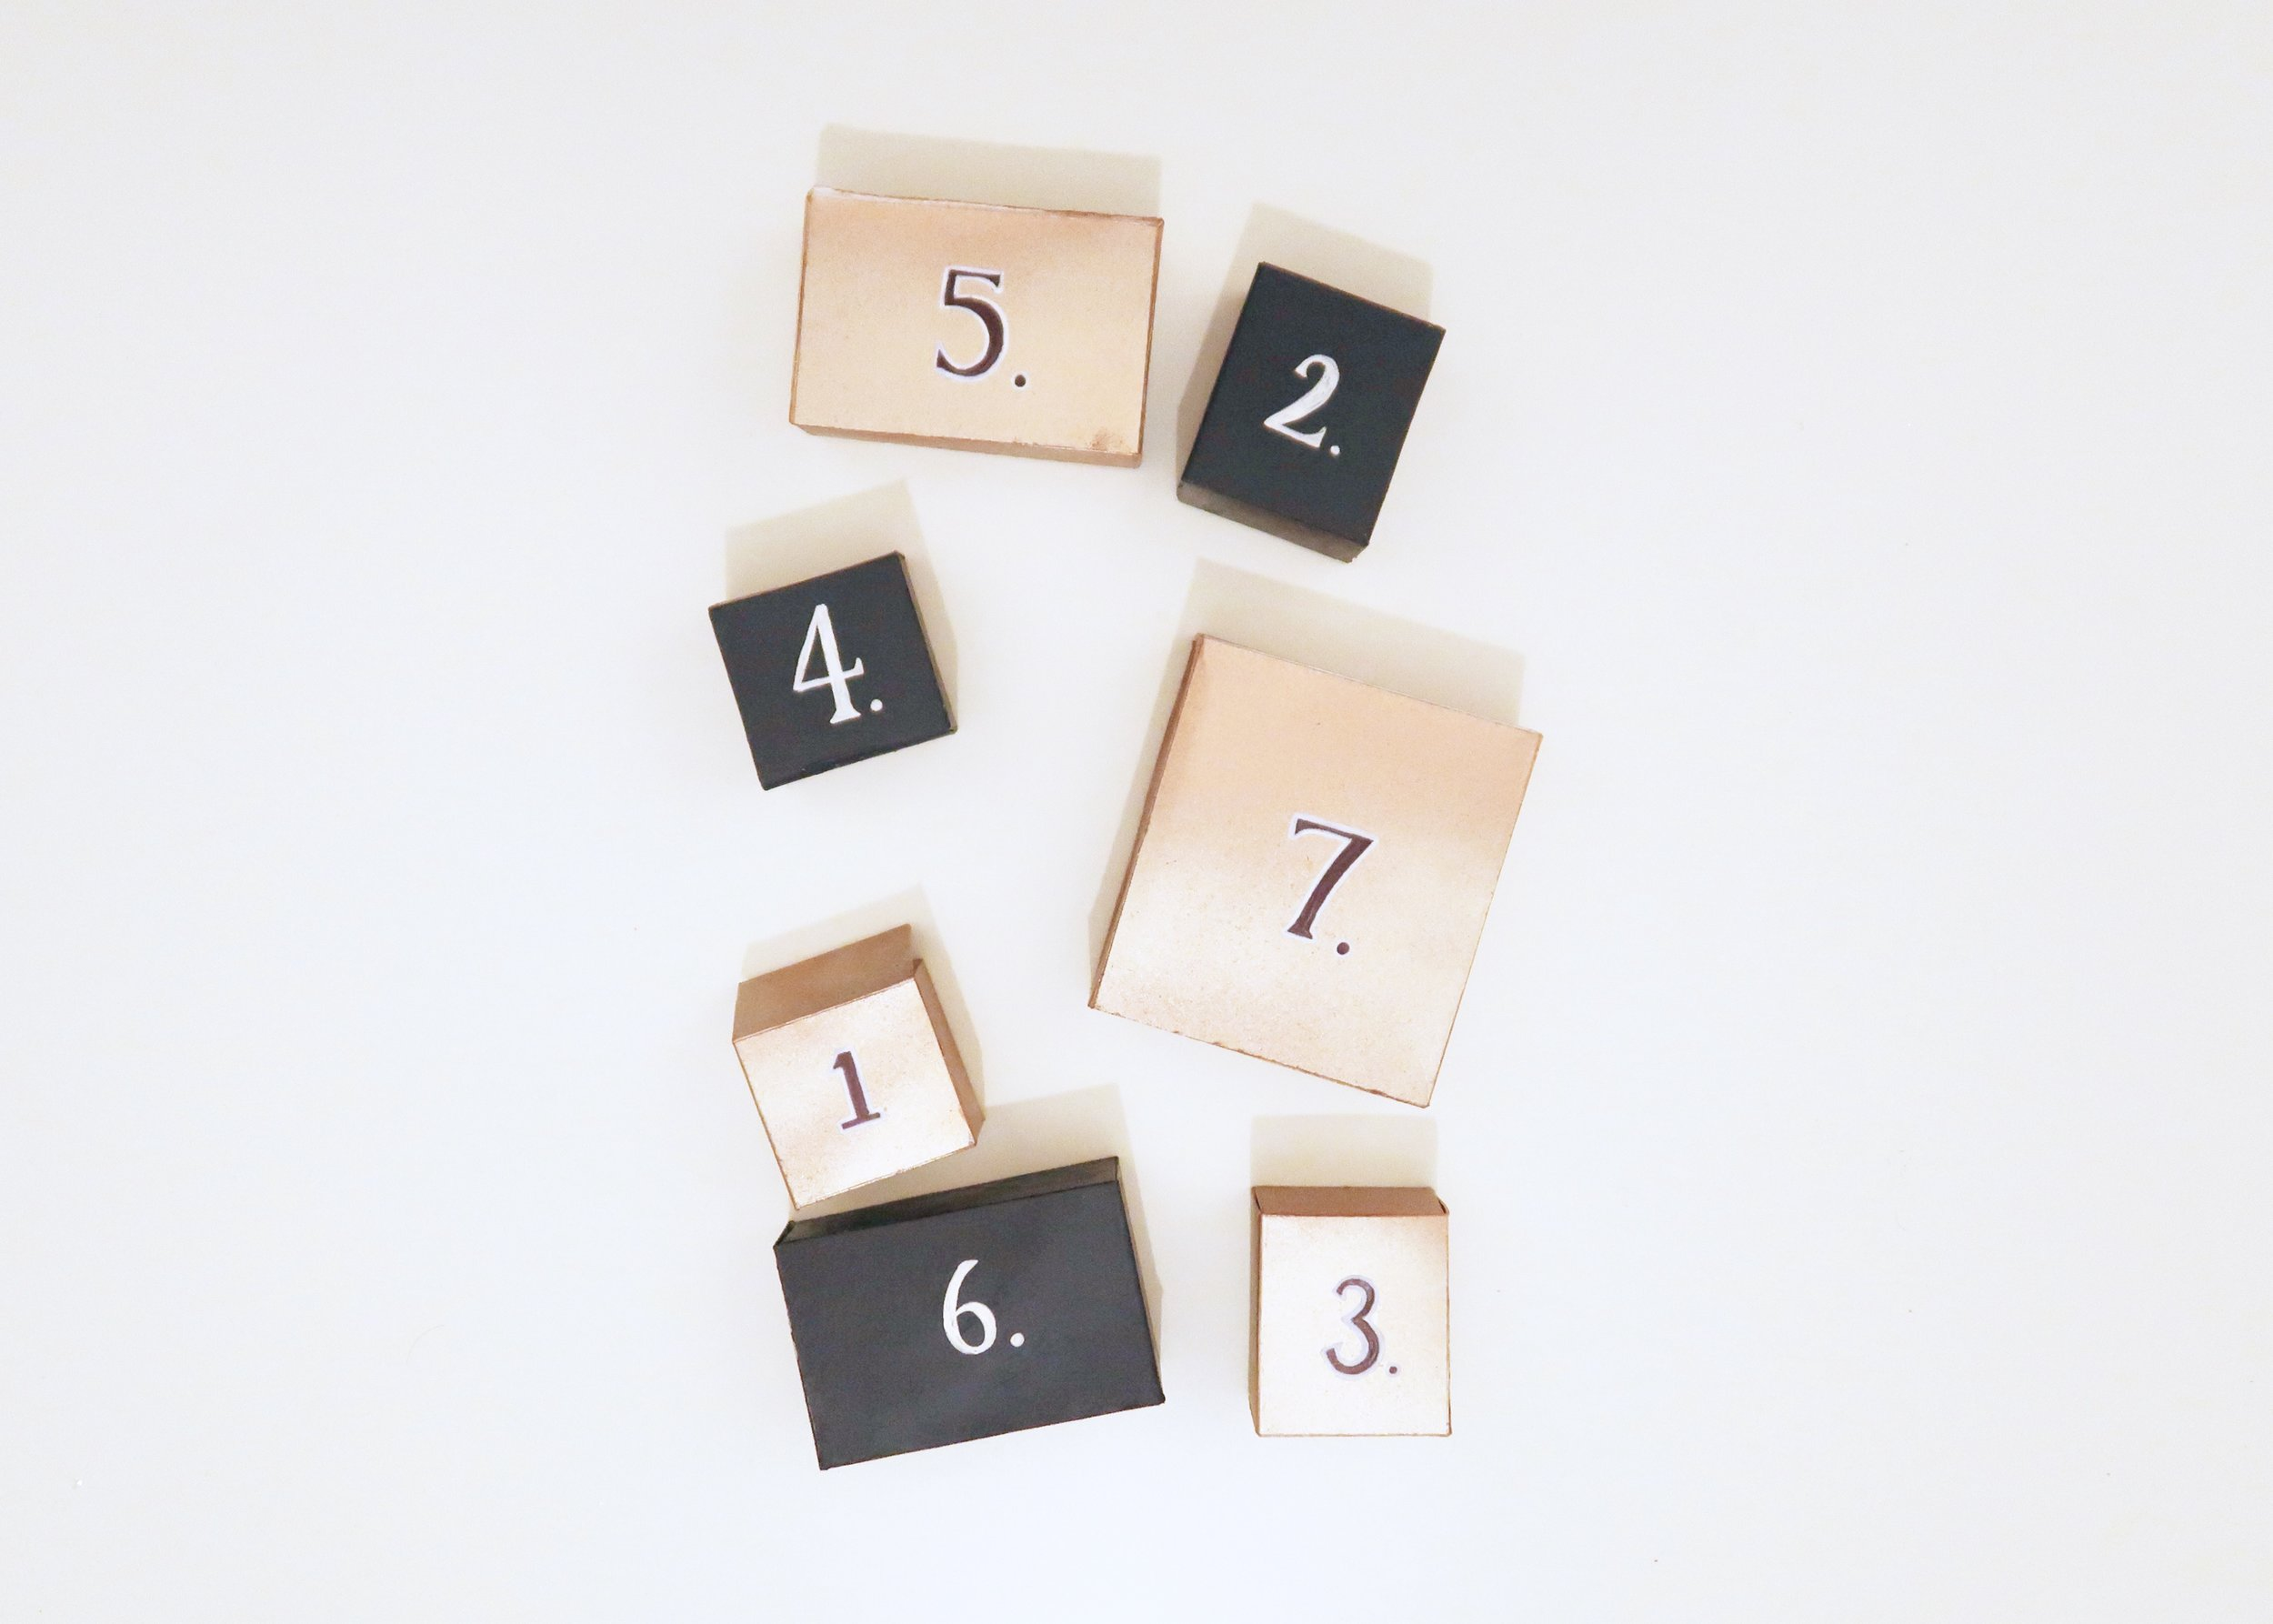 4. - Once you're happy, take out the boxes and decorate them however you want. I chose to paint half in a navy blue, with white numbers drawn onto them (using the white gel pen), and the other half copper with black (using the sharpie) and white outlined numbers written onto them.